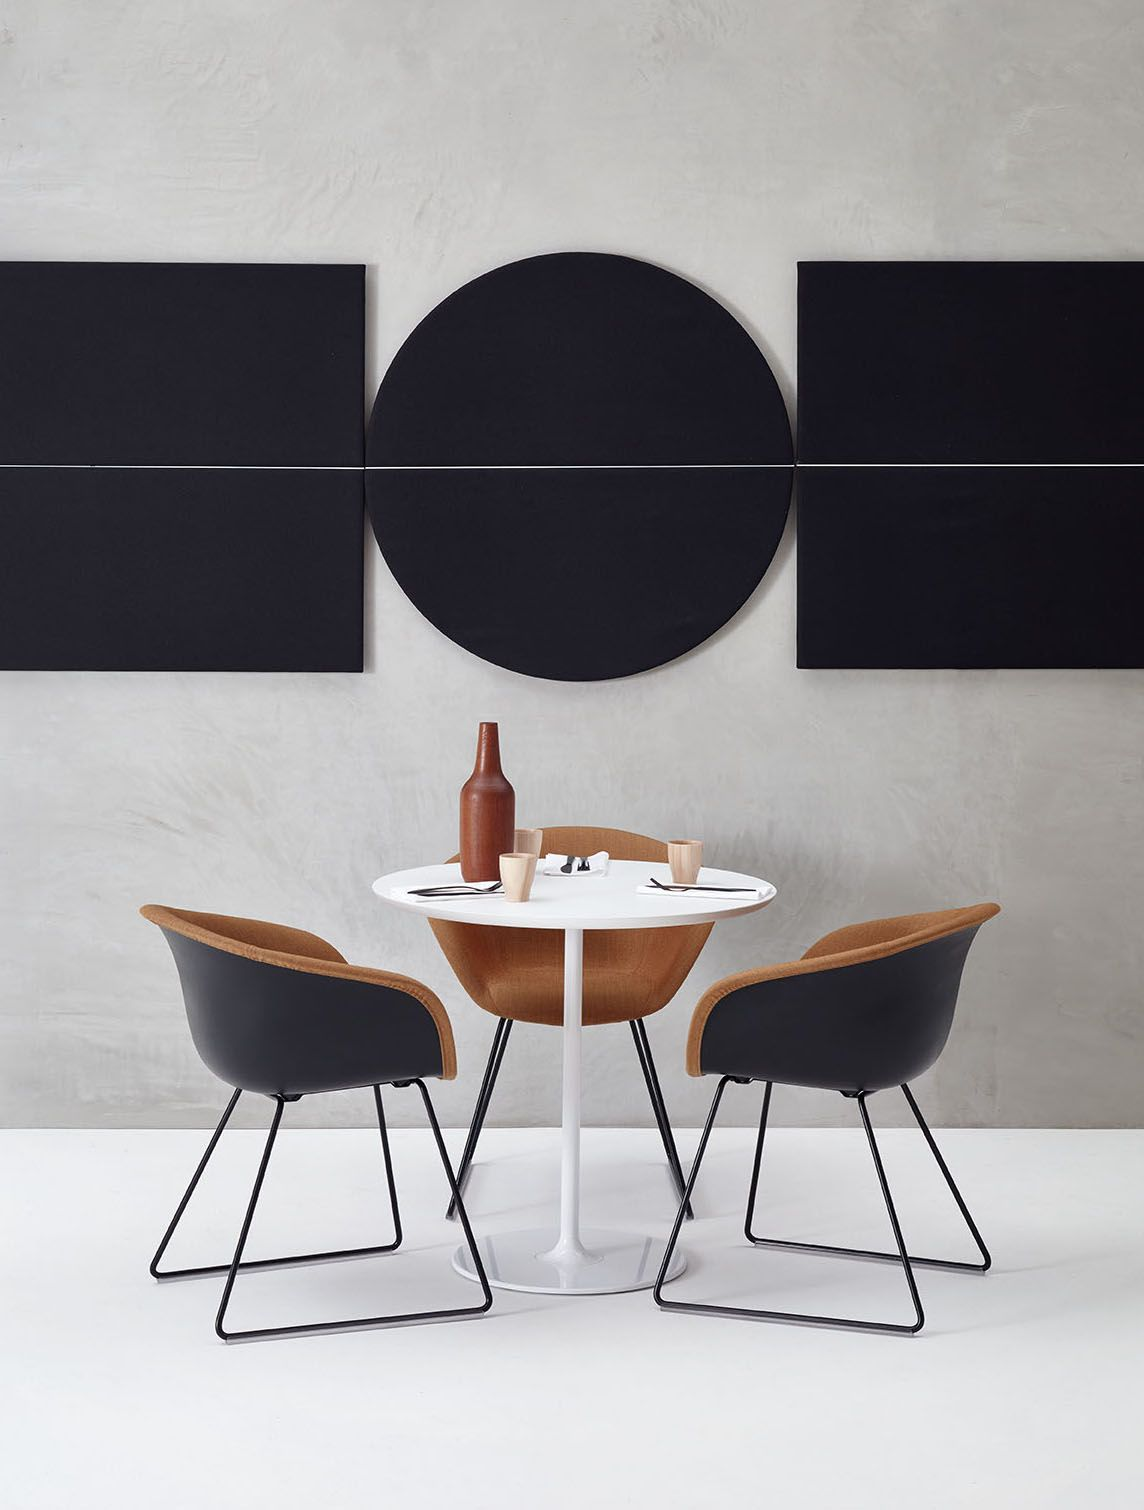 arper duna 02 chair and parentesit wall panel by lievore. Black Bedroom Furniture Sets. Home Design Ideas